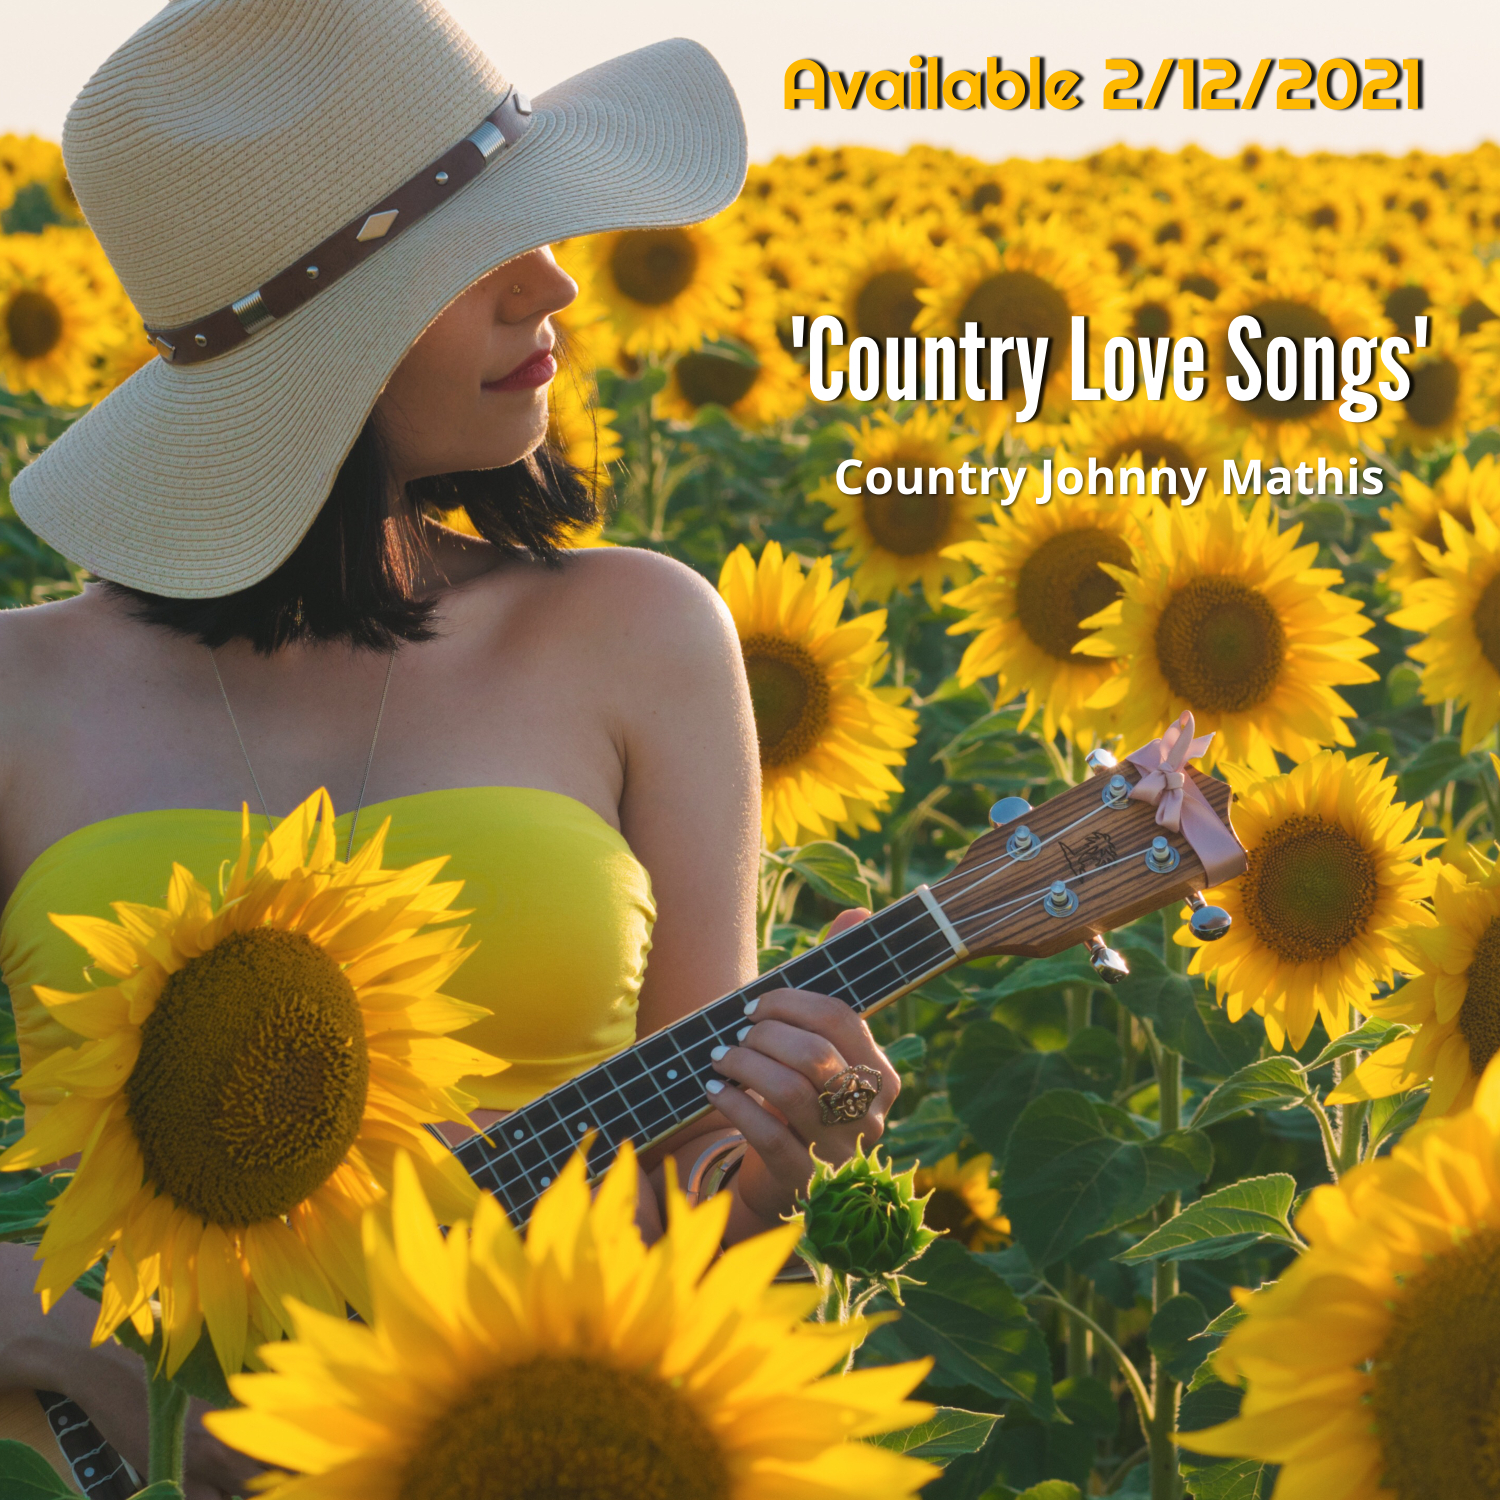 Country Love Songs, Country Music, New Music 2021, Music In My Heart